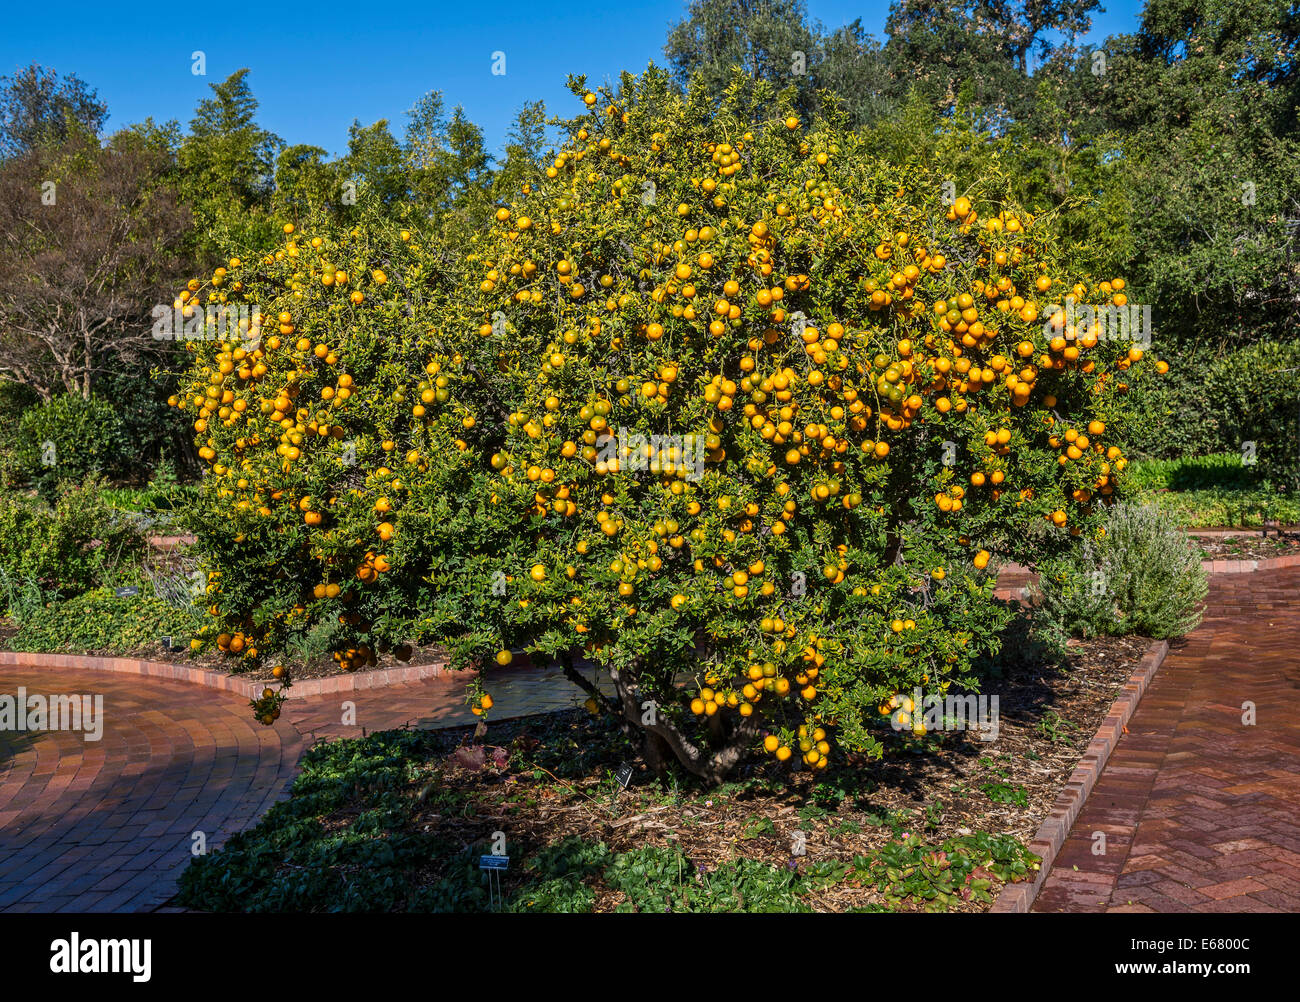 A tree full of Chinotto Oranges, Citrus aurantium at the Huntington Library and botanical gardens. - Stock Image